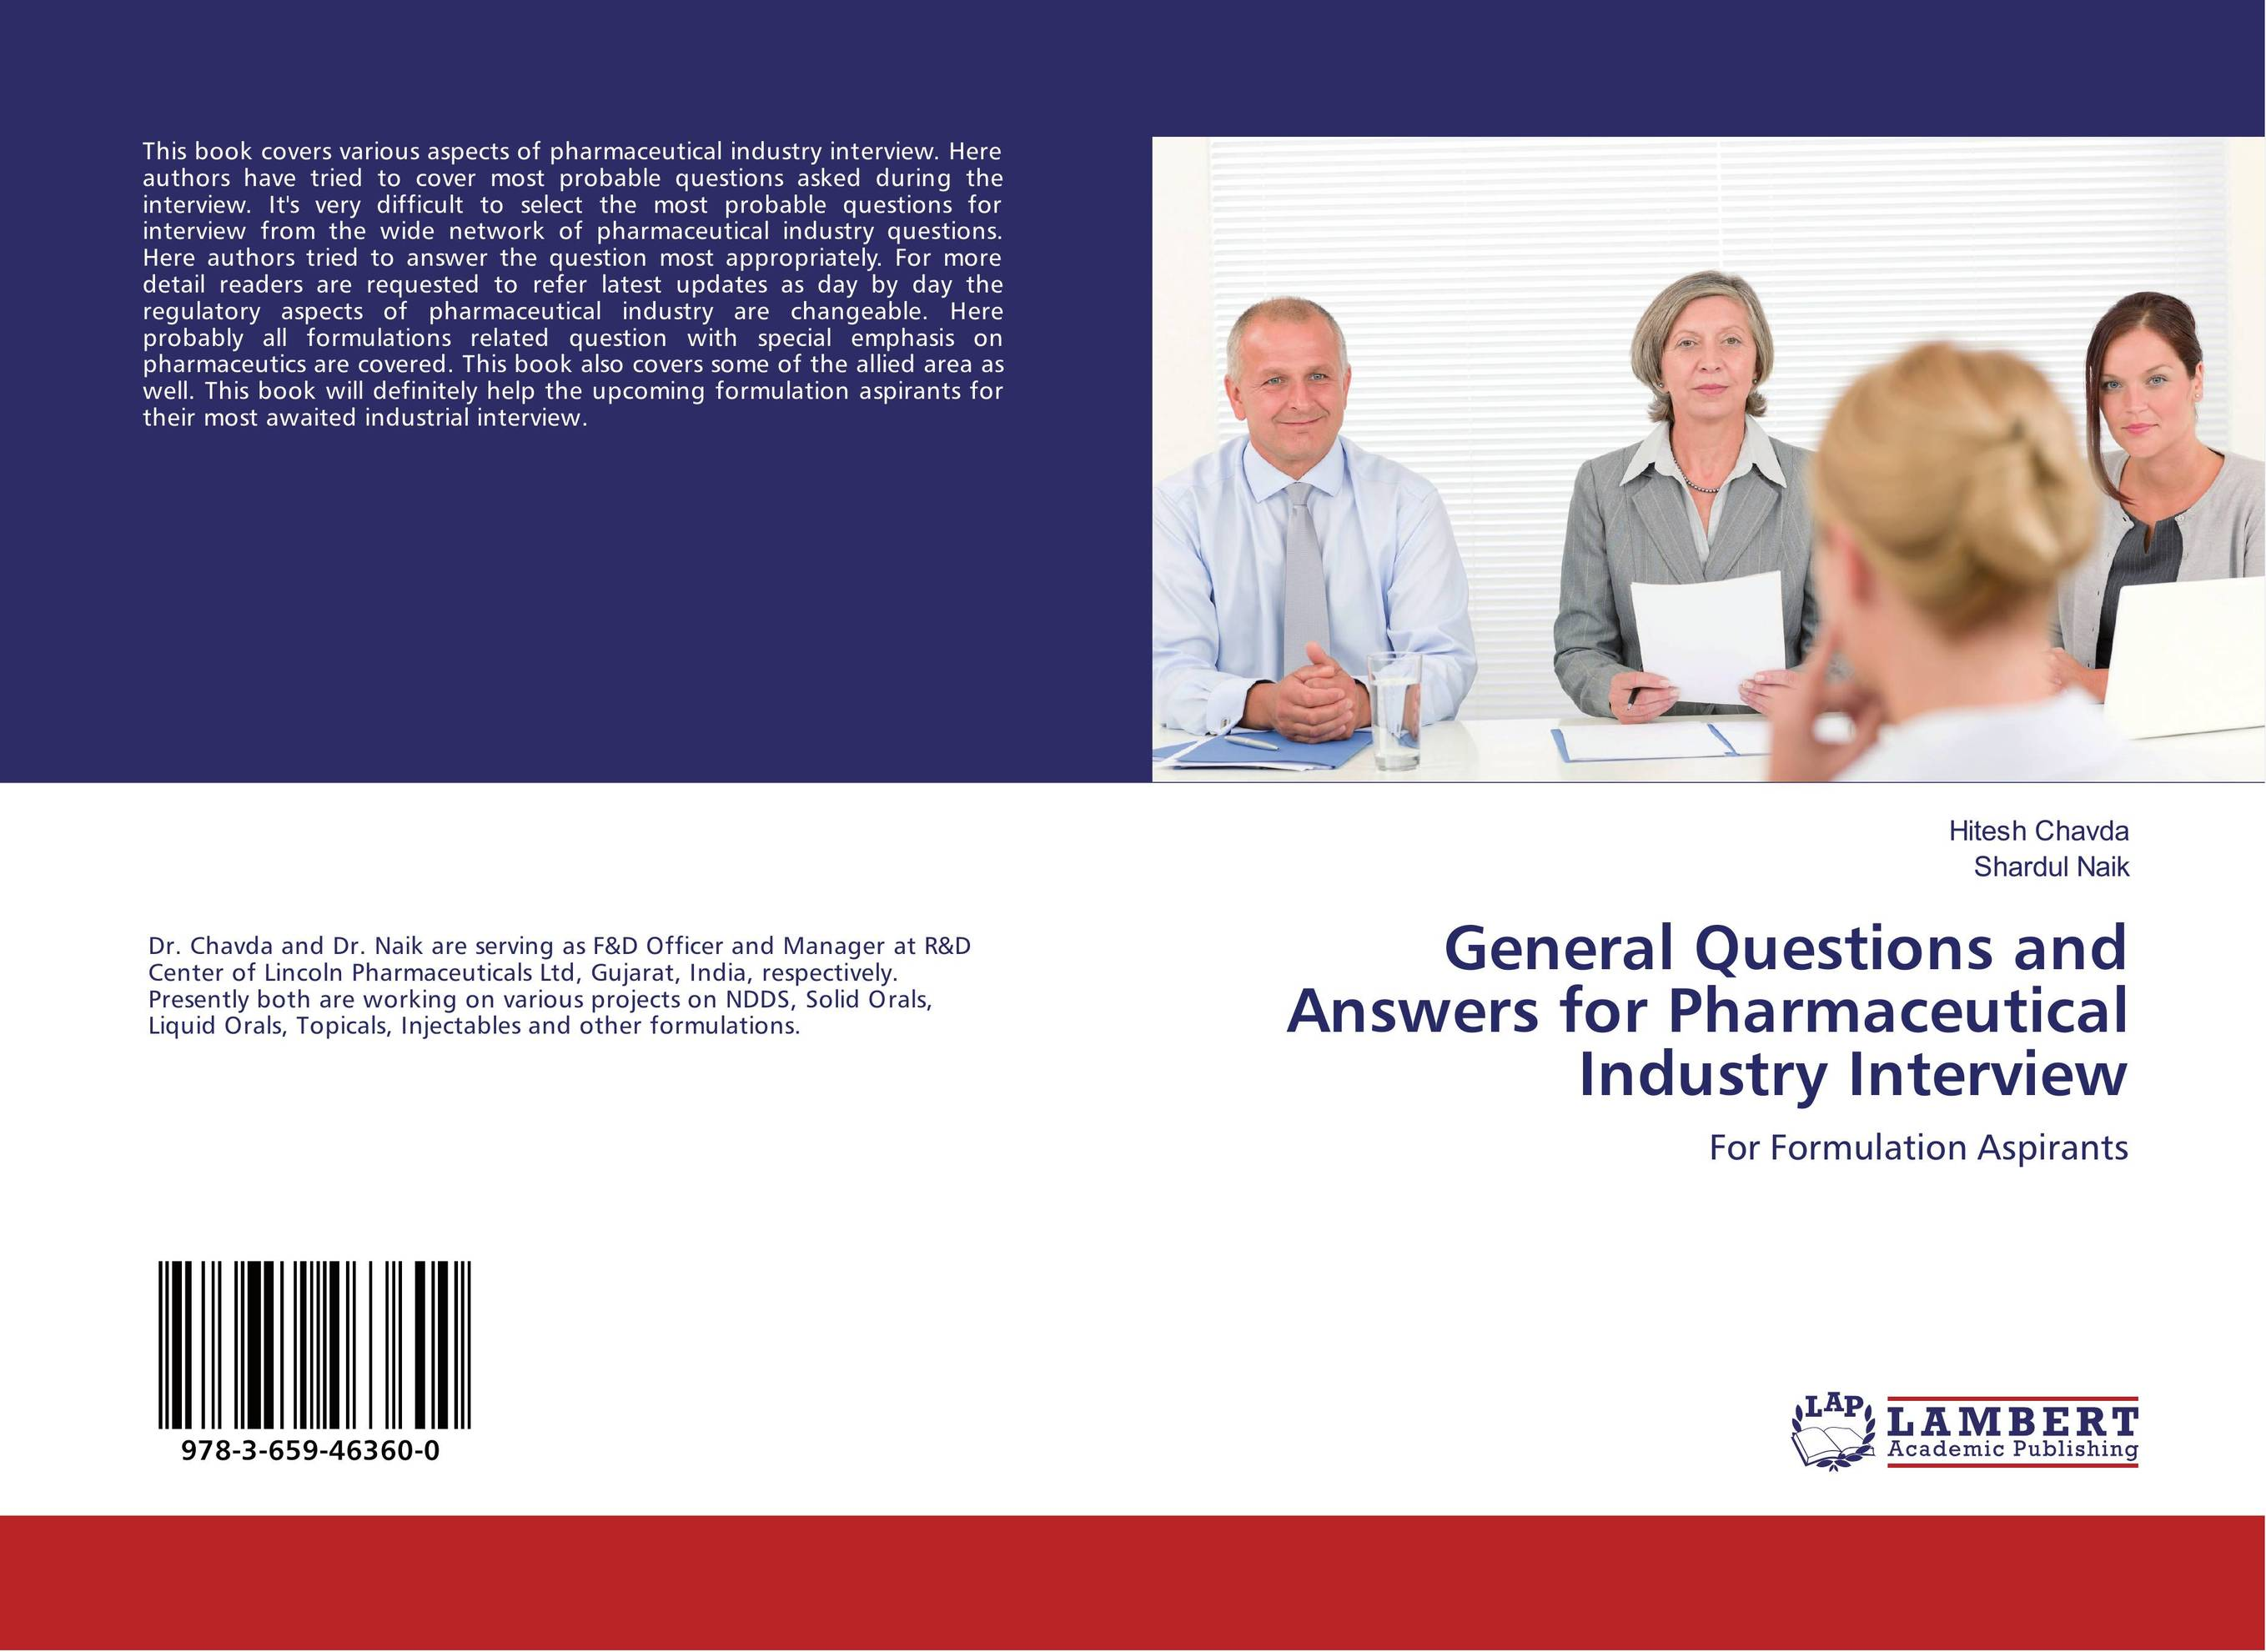 General Questions and Answers for Pharmaceutical Industry Interview mcdowell g cracking interview 150 programming questions and solutions